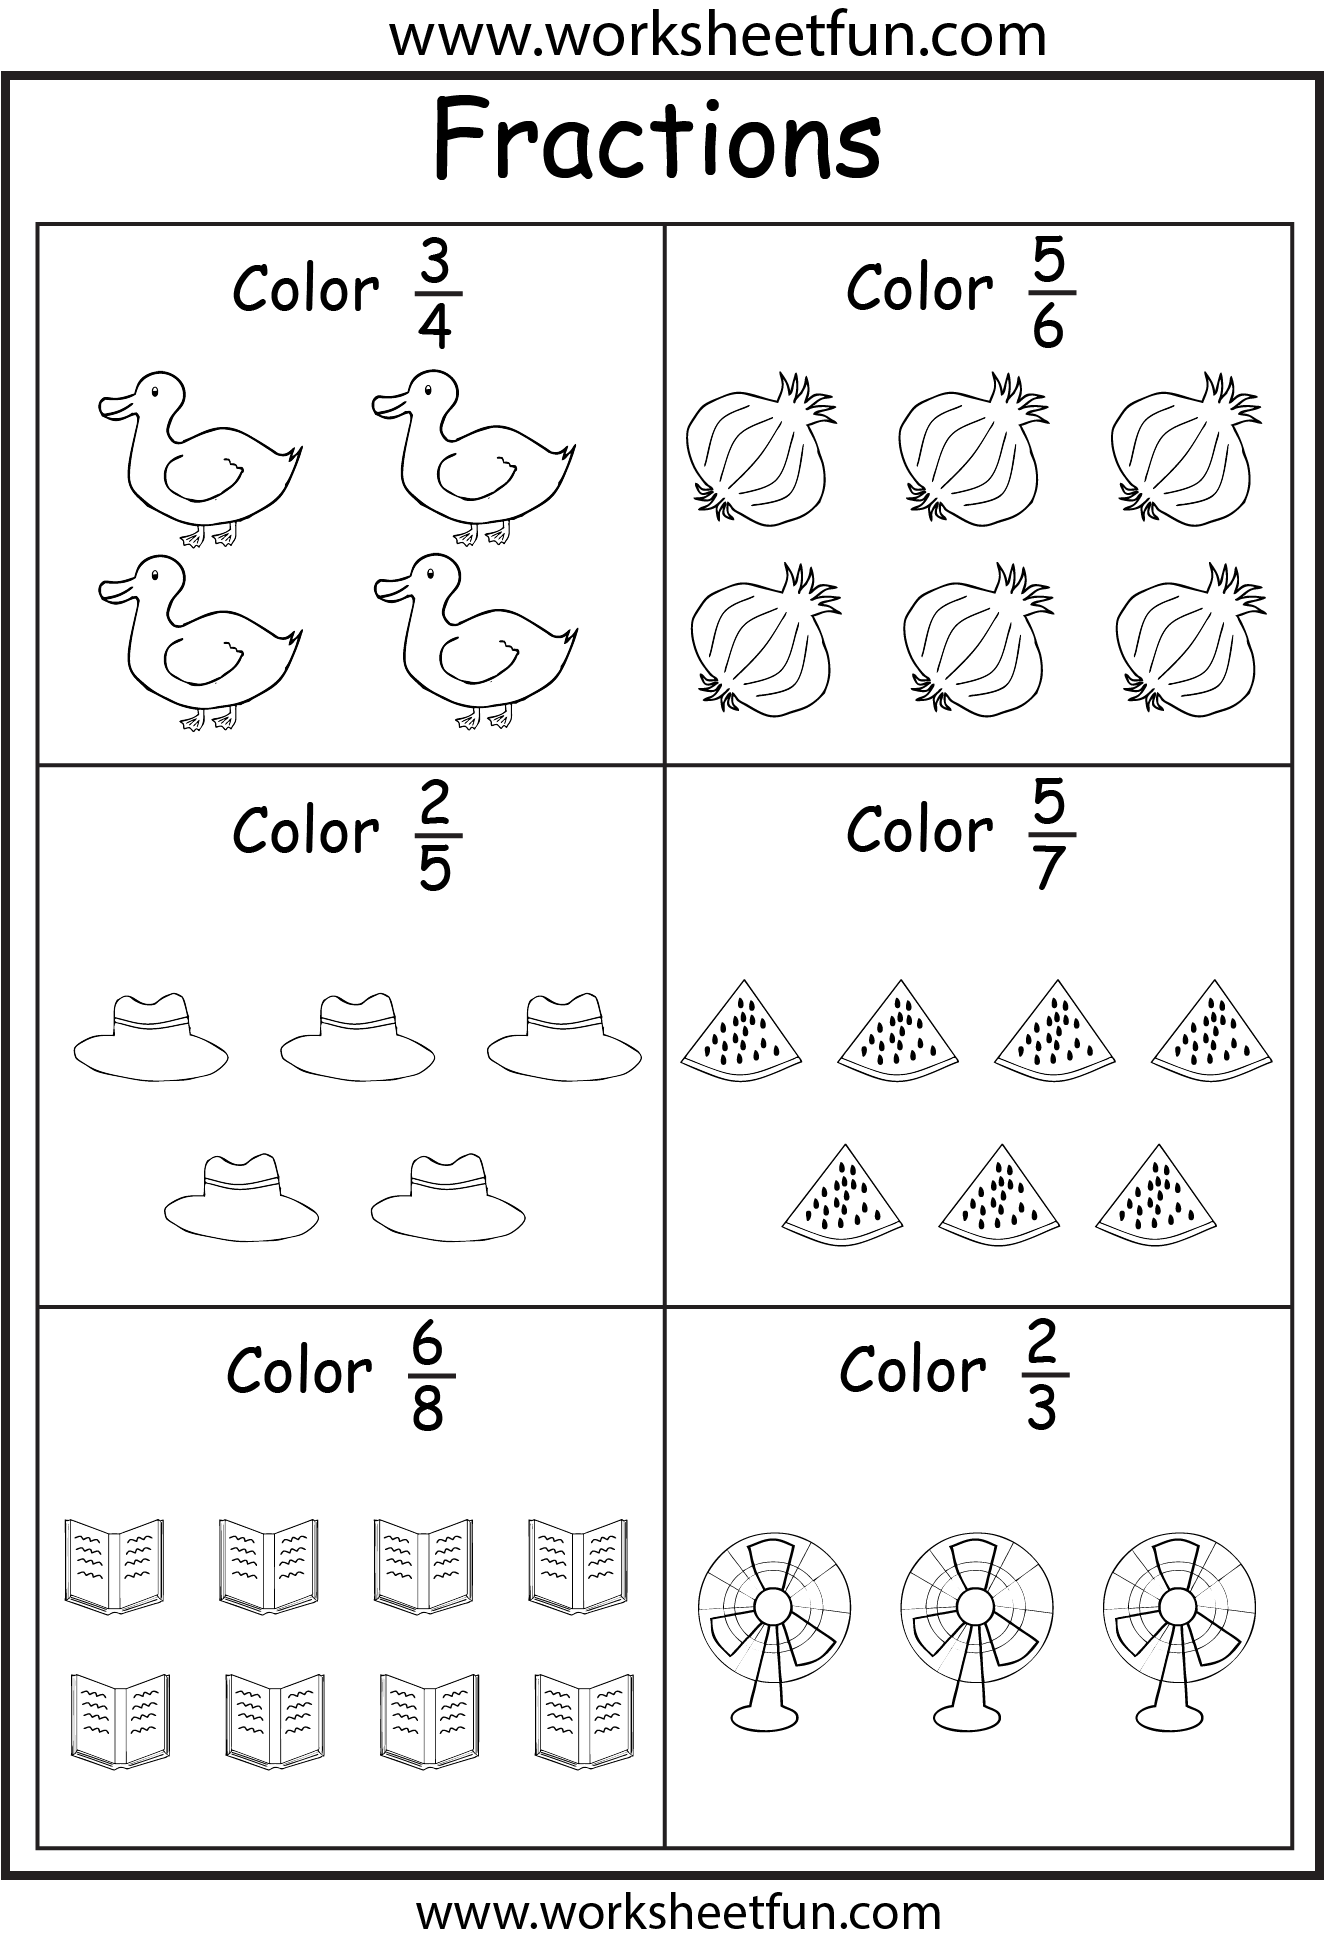 Comparing Fractions 4 Worksheets Free Printable Worksheets Fractions Worksheets Fractions 1st Grade Math Worksheets